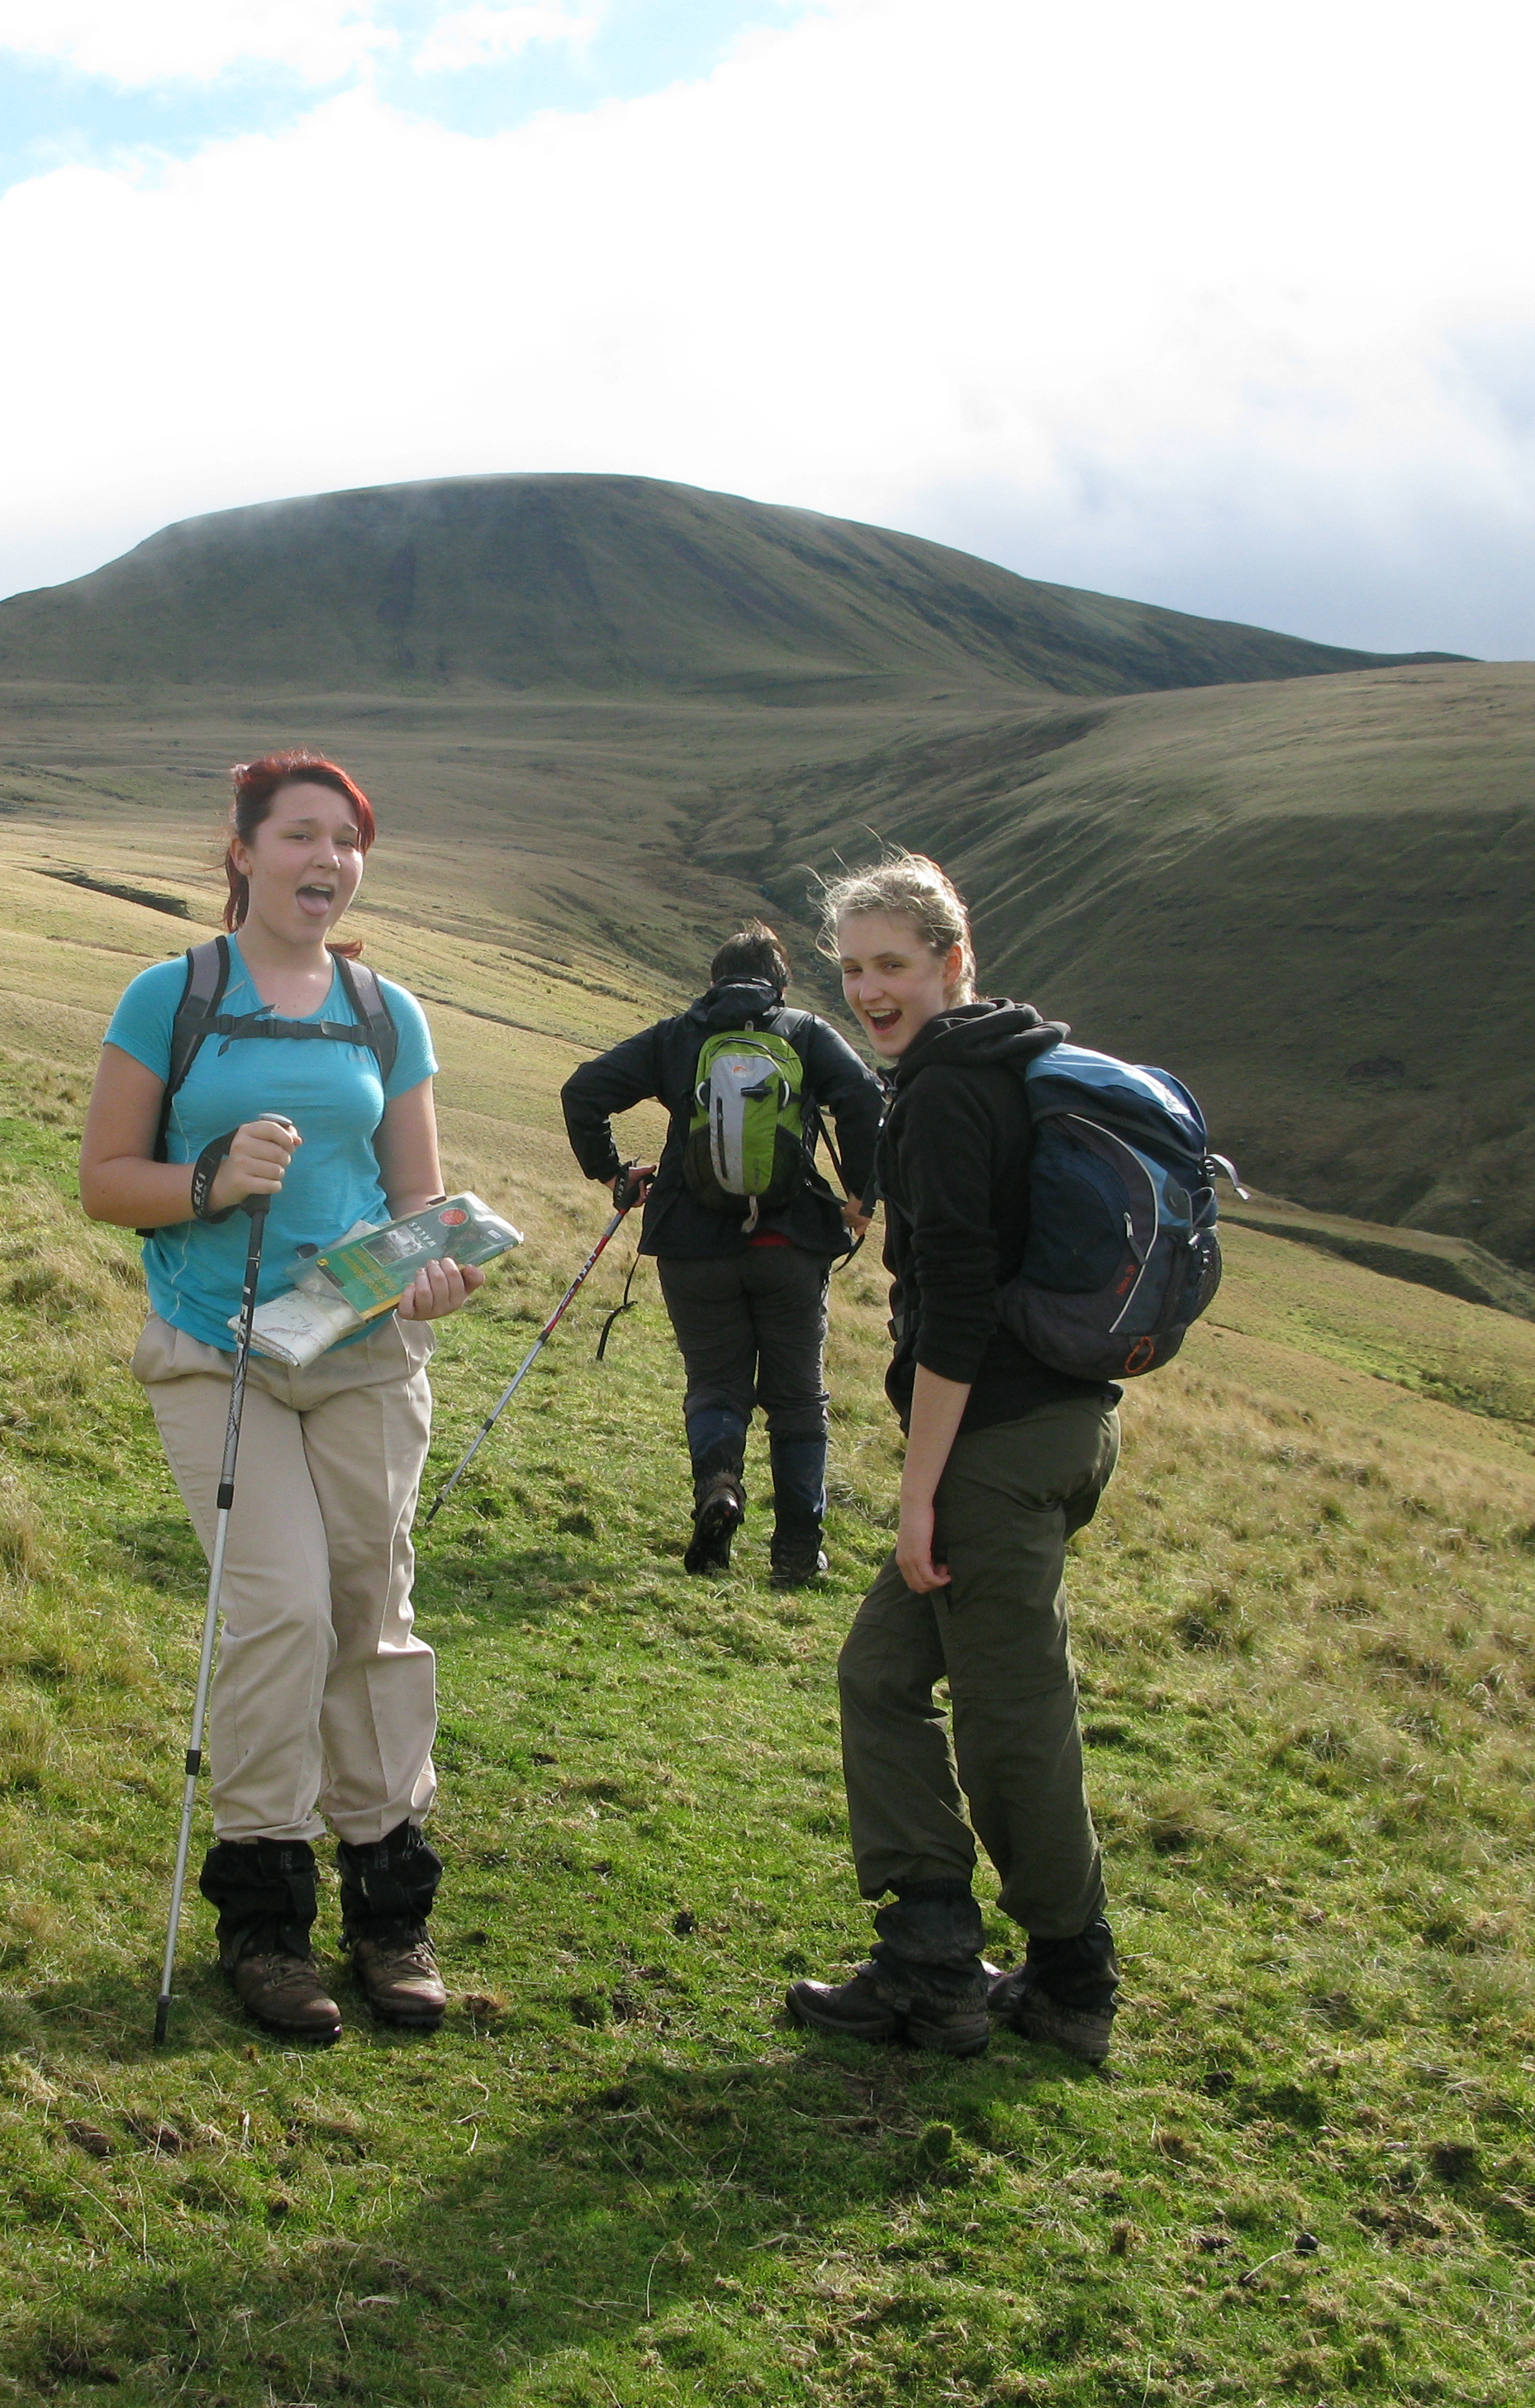 A Brecon Beacons walking holiday with schoolfriend joing us